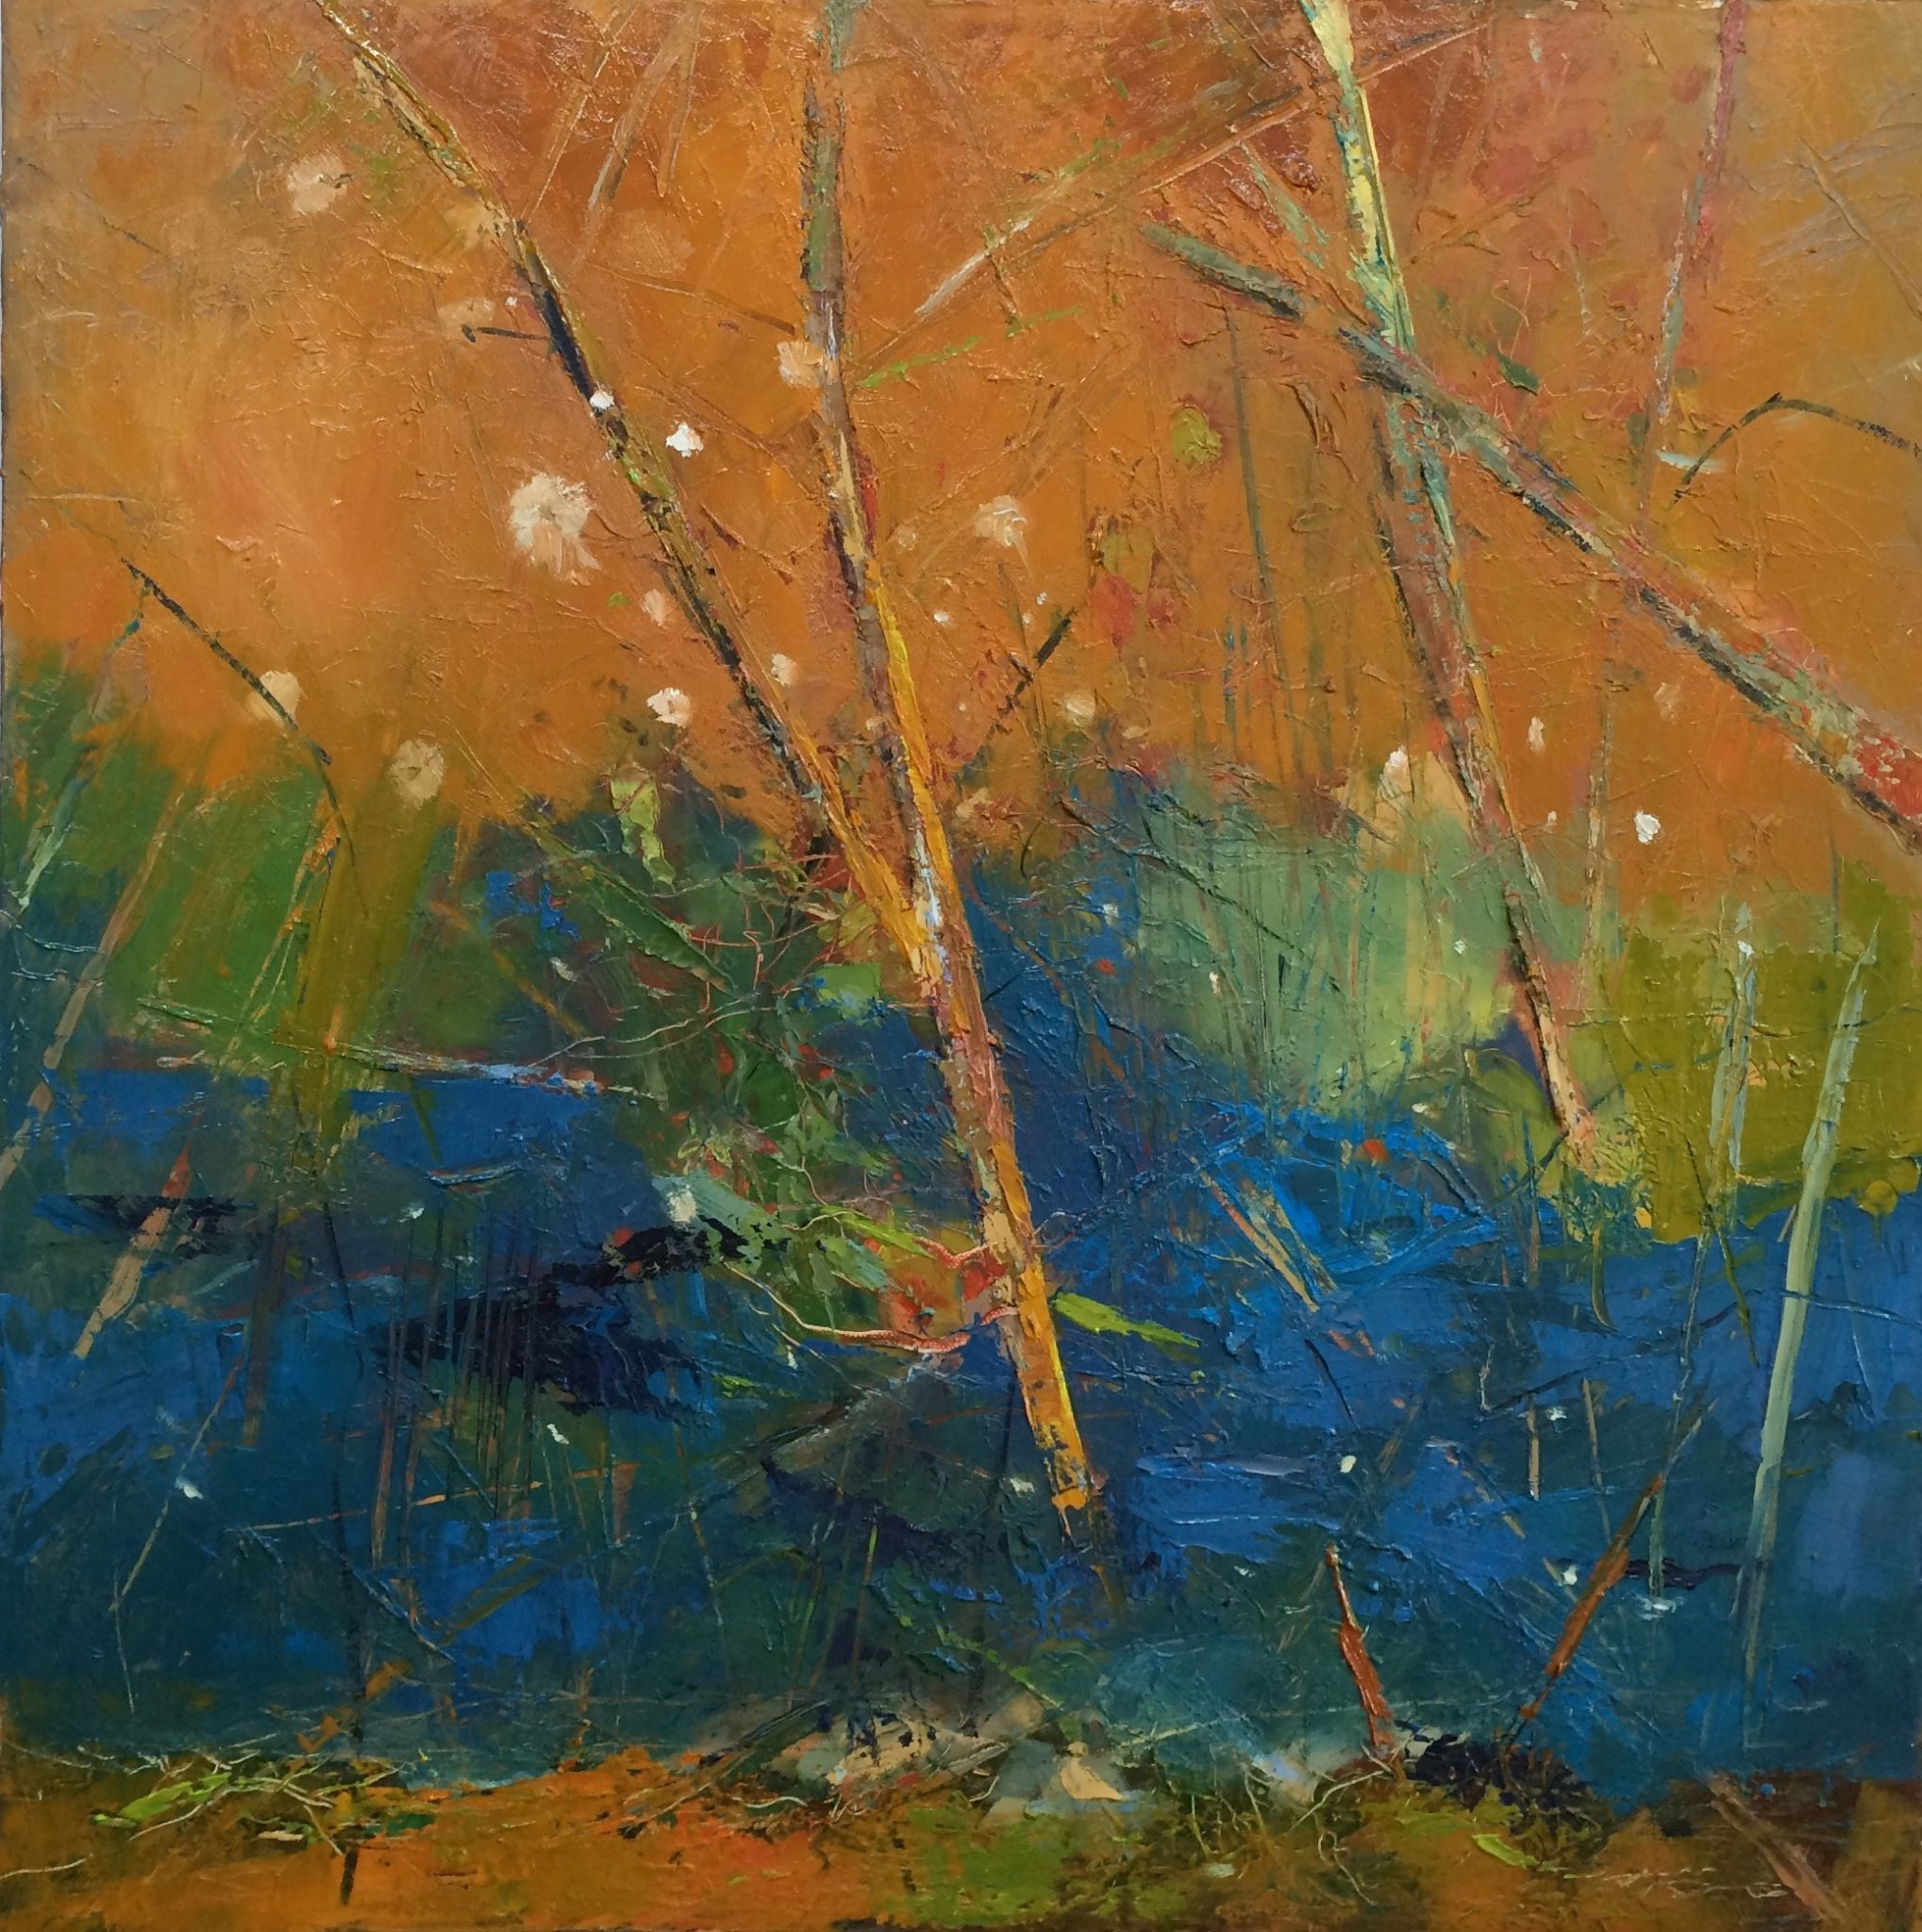 Late Summer Dreams, Thirion Abstract